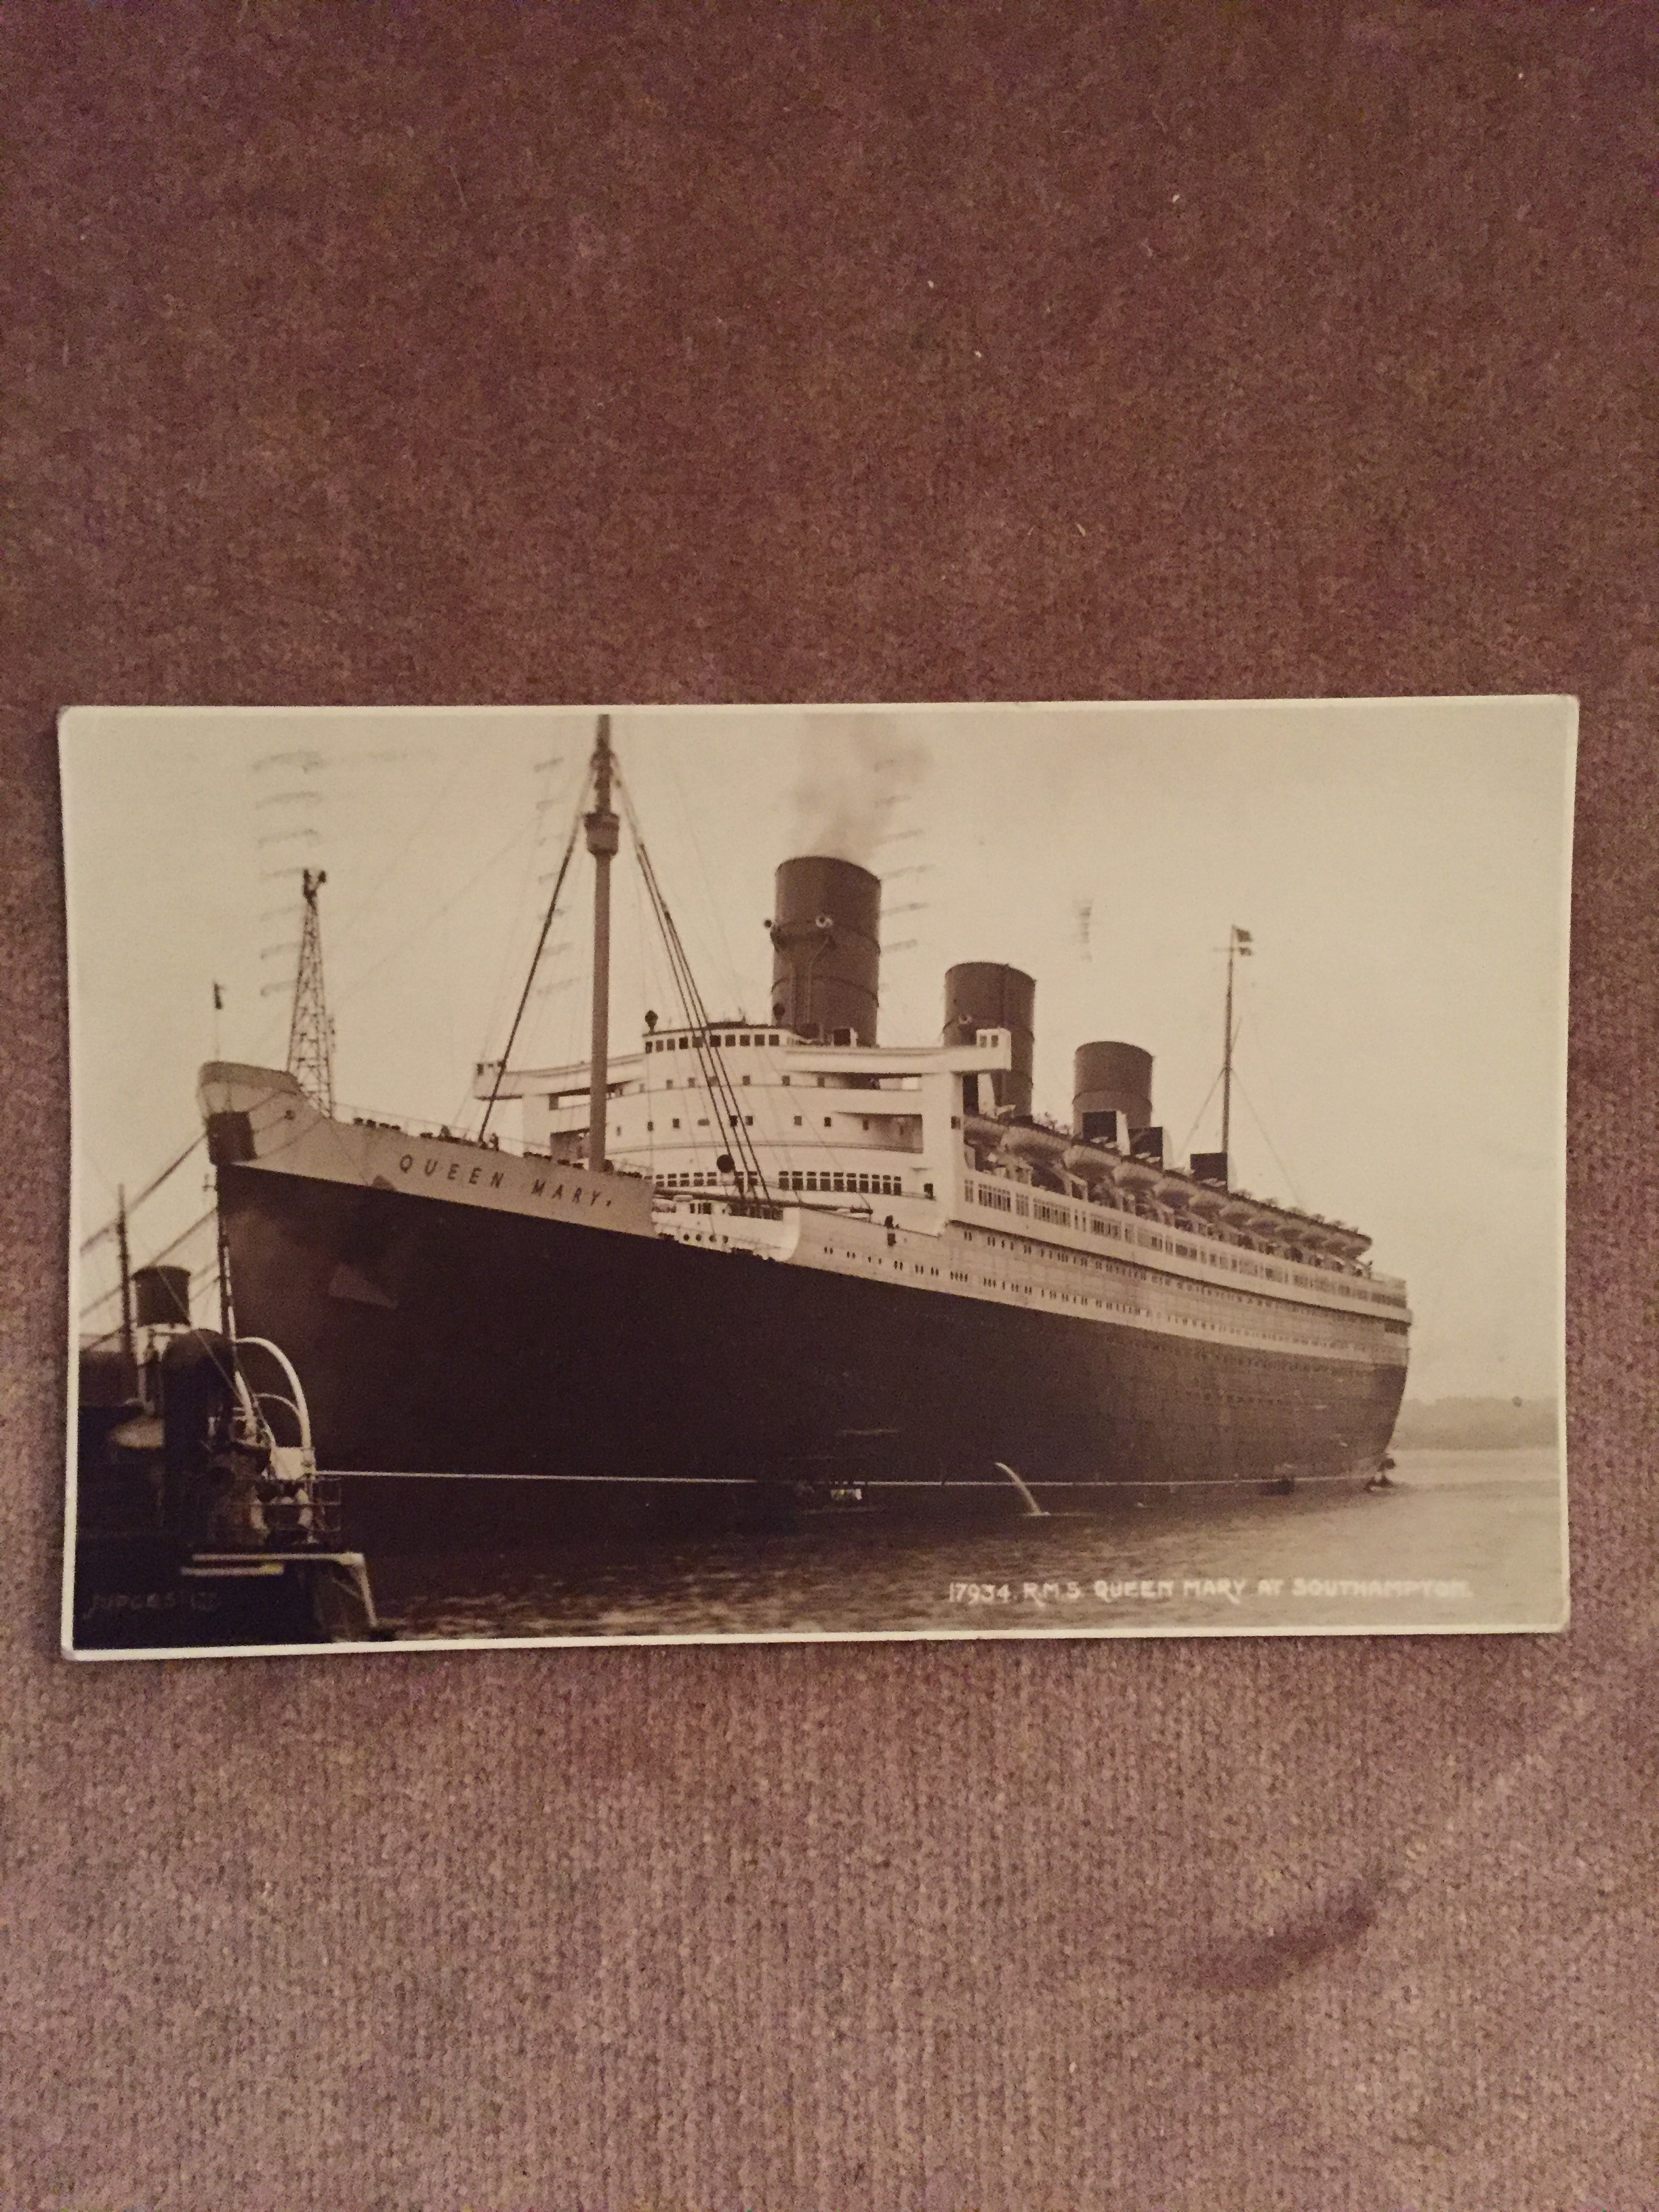 USED B/W POSTCARD FROM THE VERY FAMOUS OLD CUNARD LINE VESSEL THE QUEEN MARY